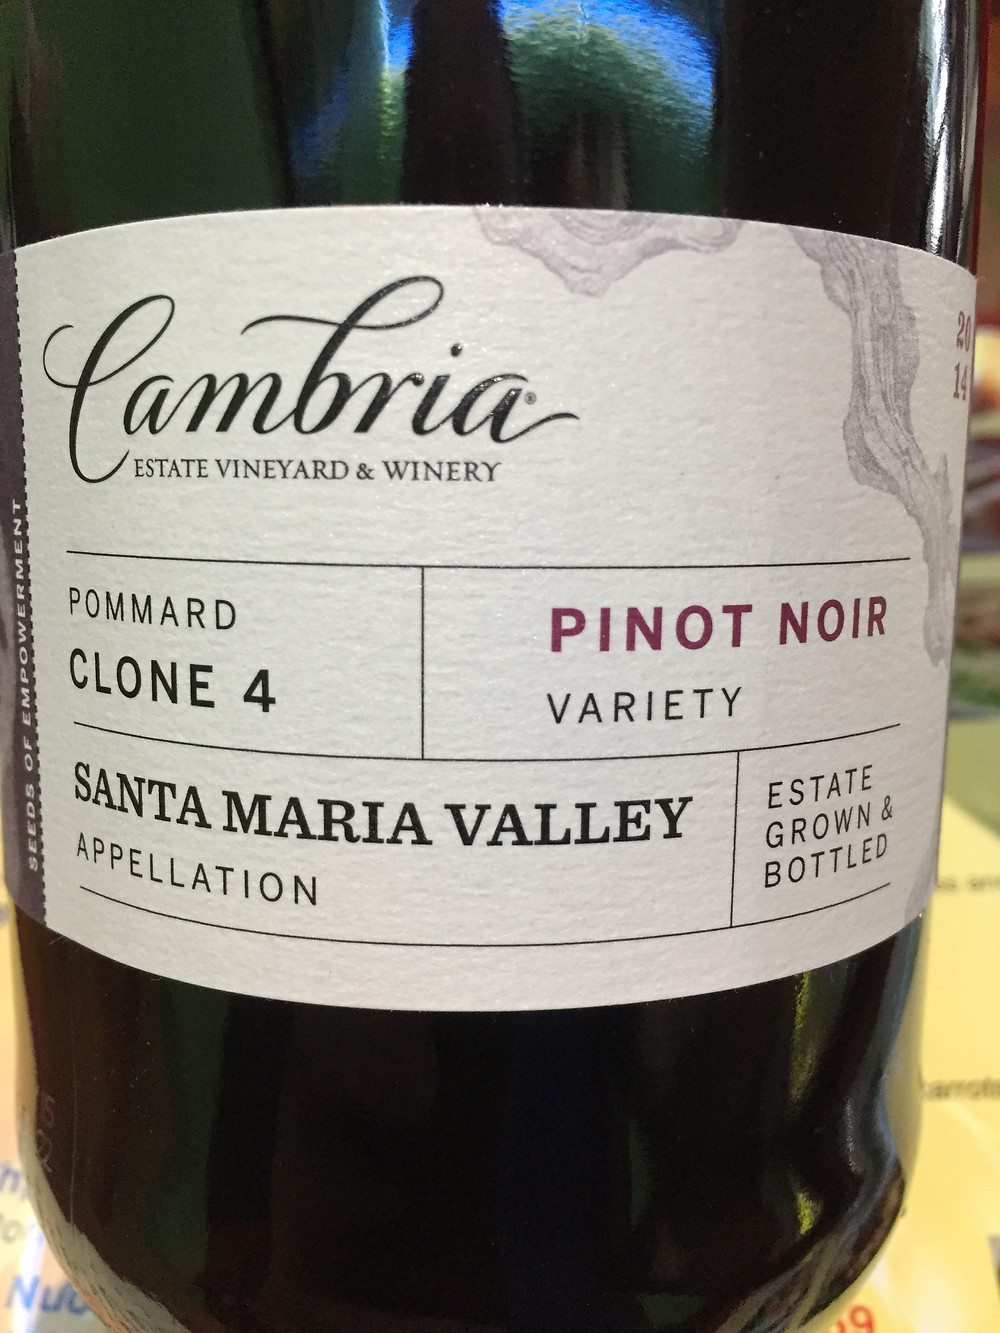 2014 Cambria Pinot Noir (Pommard Clone 4) from California's prodigious Santa Maria Valley. Its soft texture stood up to the richness and its earthy flavors harmonized effortlessly with the food.